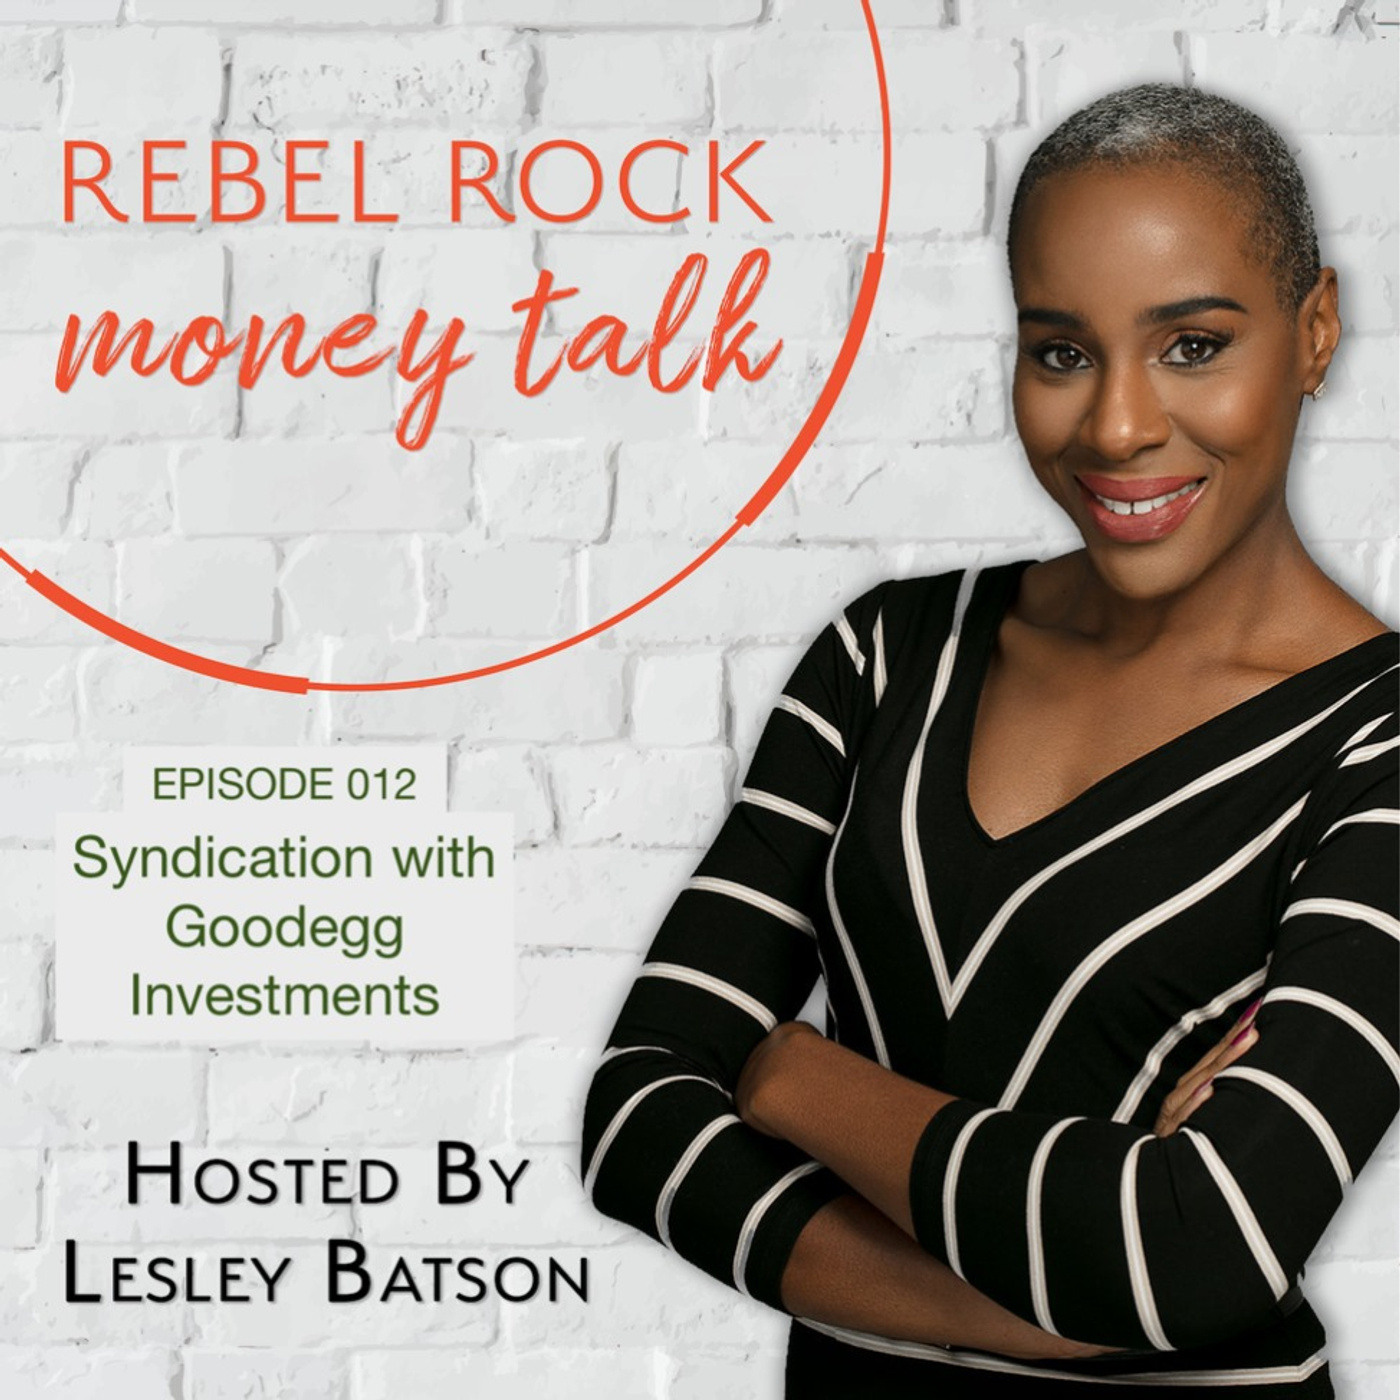 #012 - Syndication with Goodegg Investments